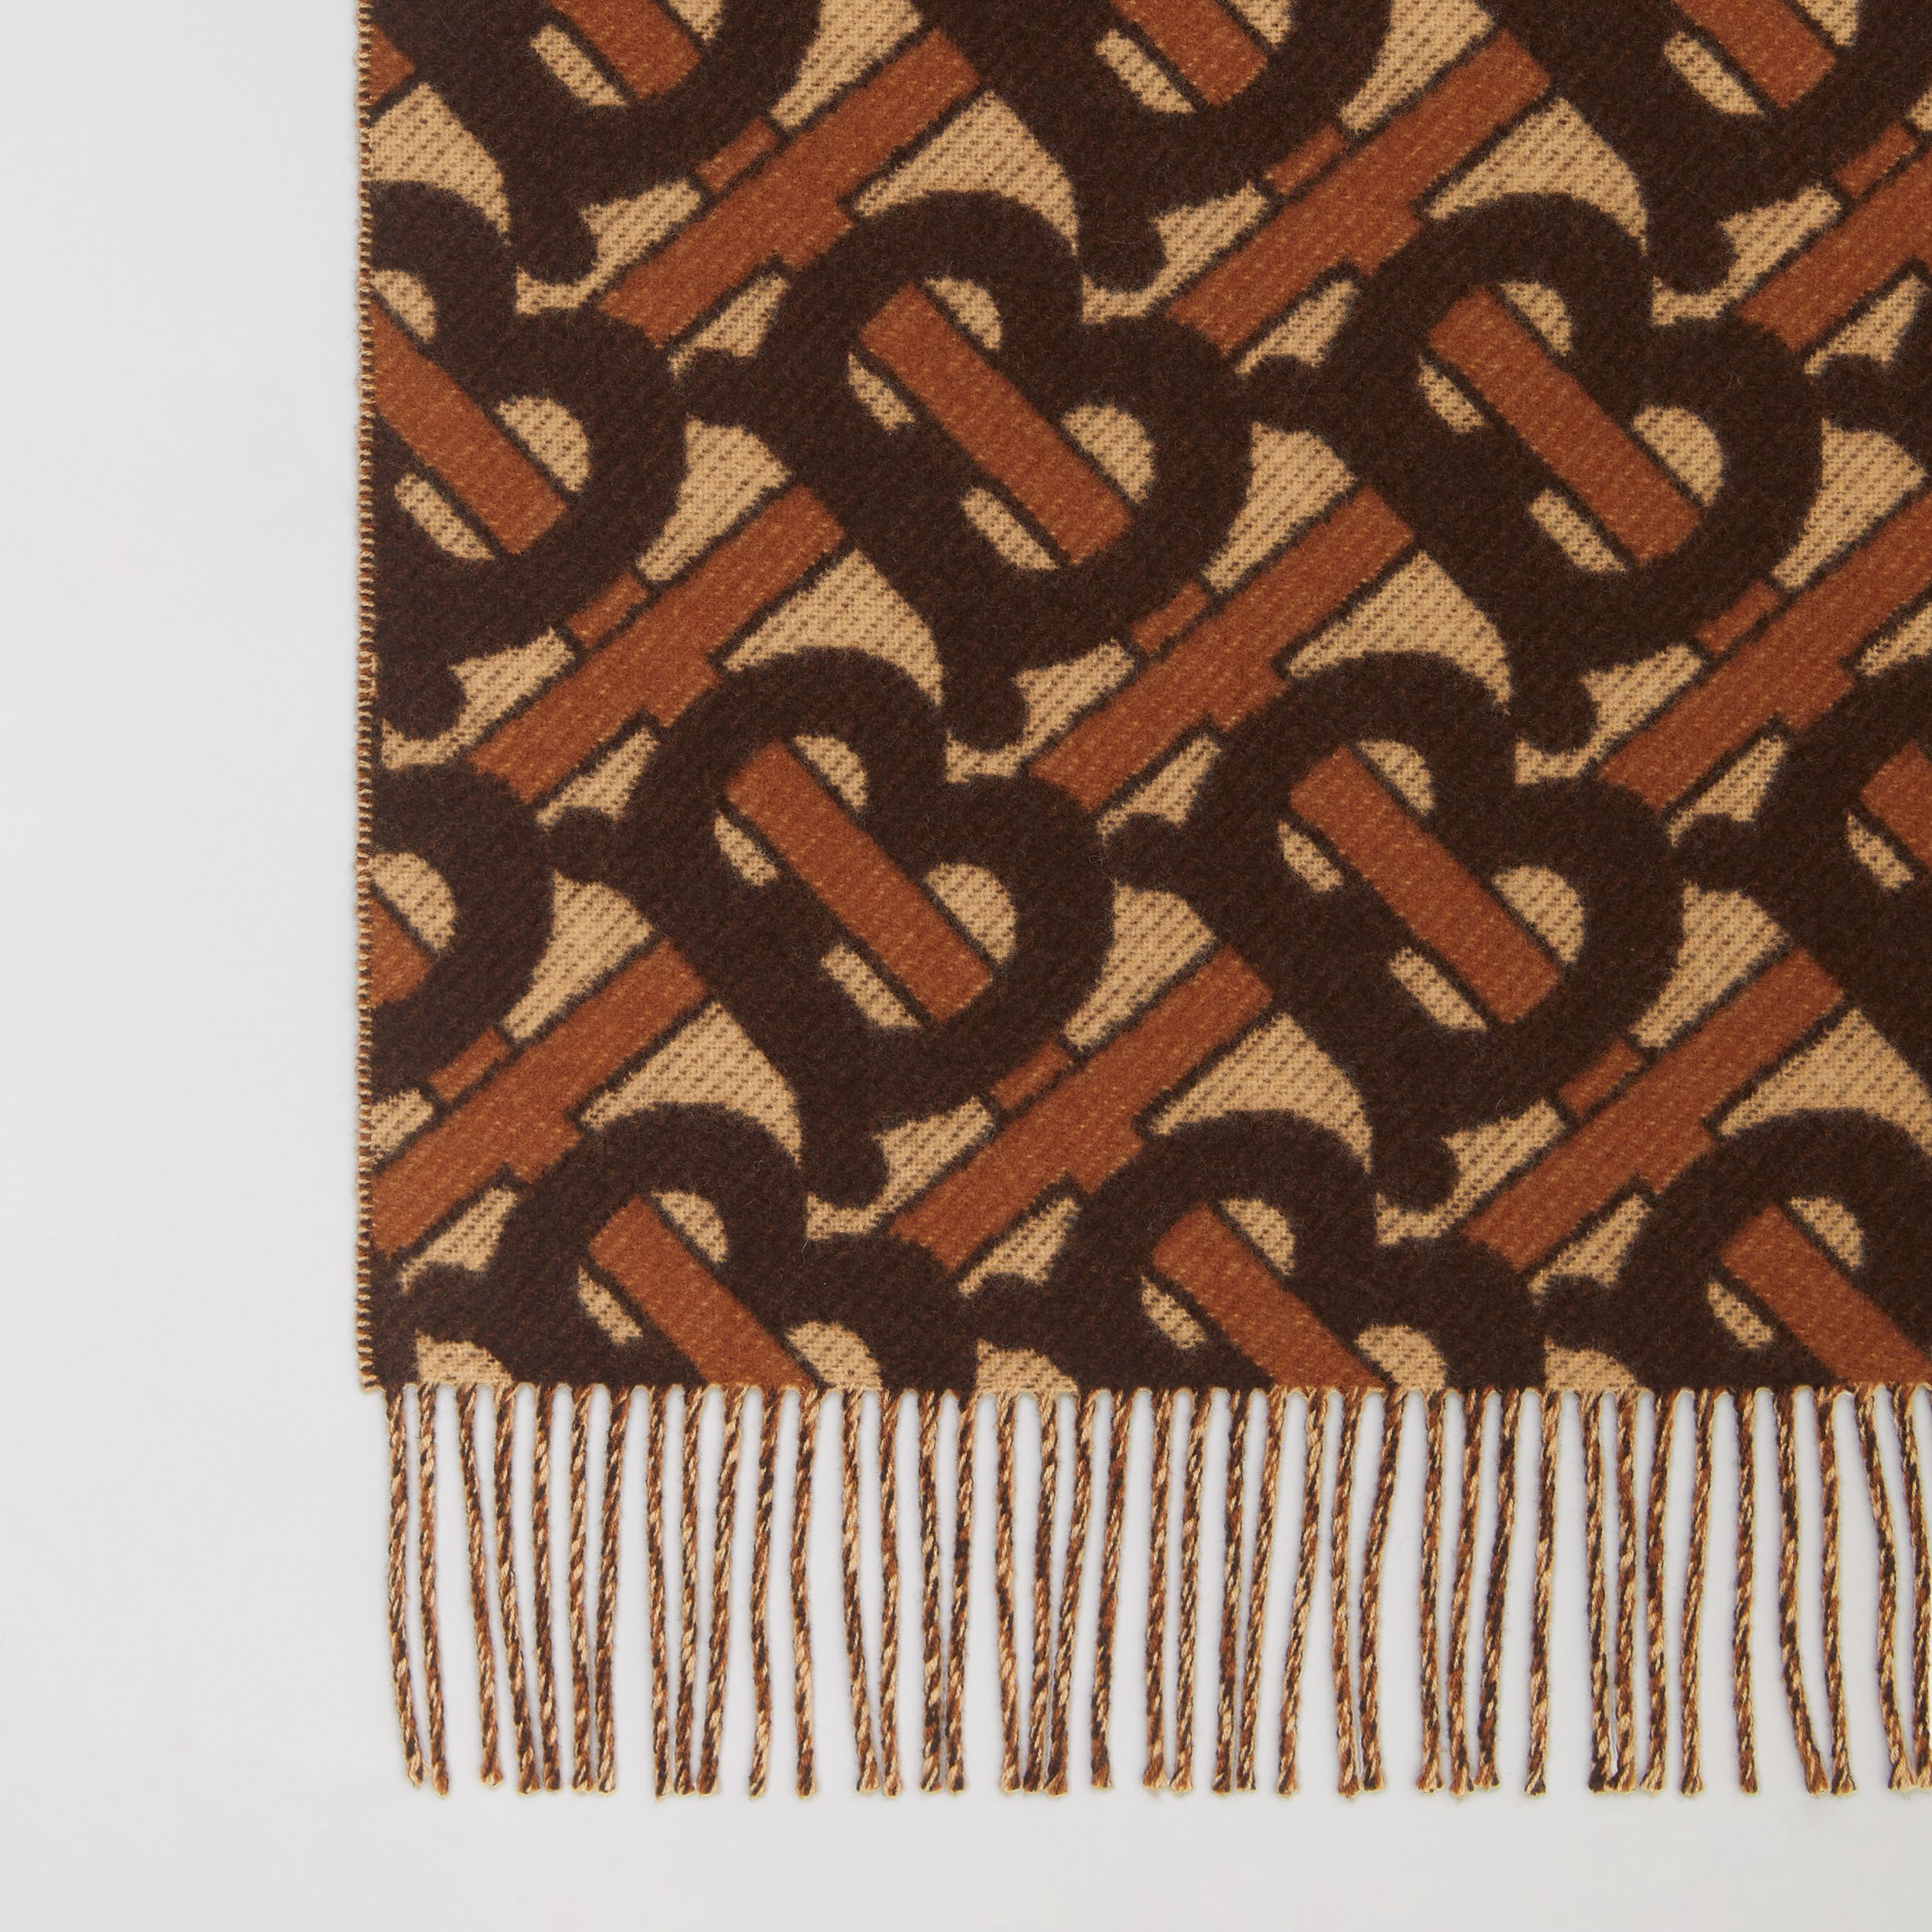 Monogram Merino Wool Cashmere Jacquard Blanket in Deep Brown | Burberry Singapore - 2